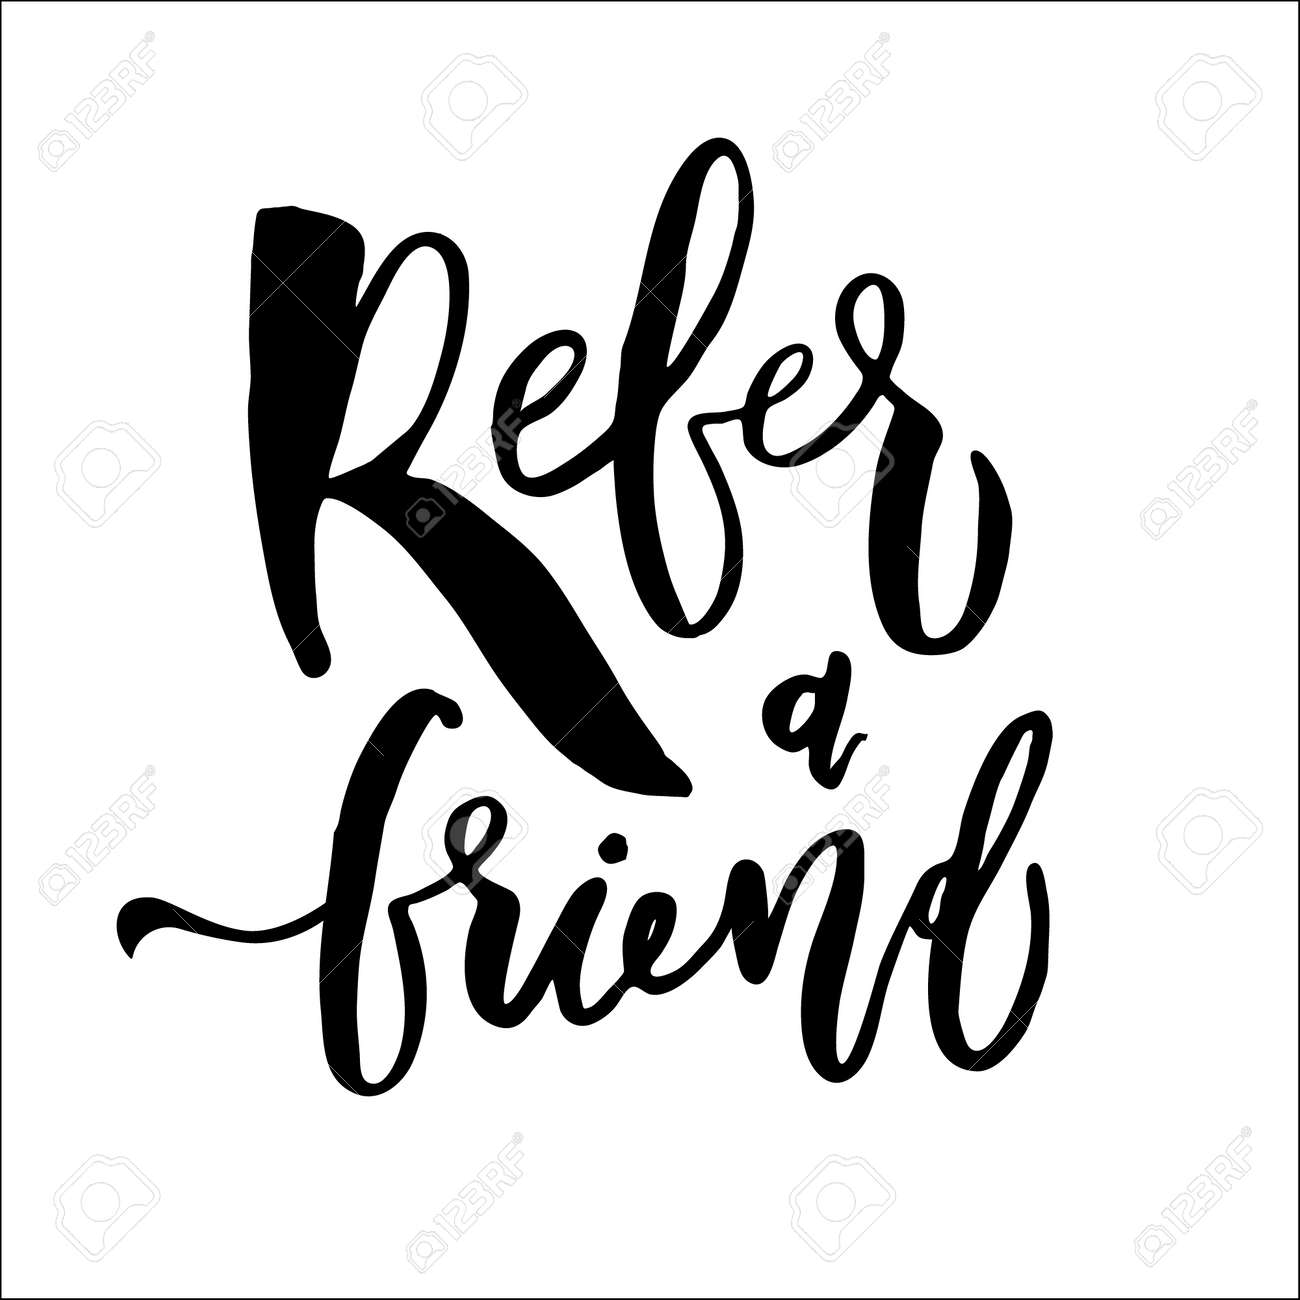 Refer a friend vector lettering. Referral marketing phrase isolated on white background. Handwritten brush pen calligraphy poster for loyalty program. Attract customers flyer. Start referring, invite - 133190924